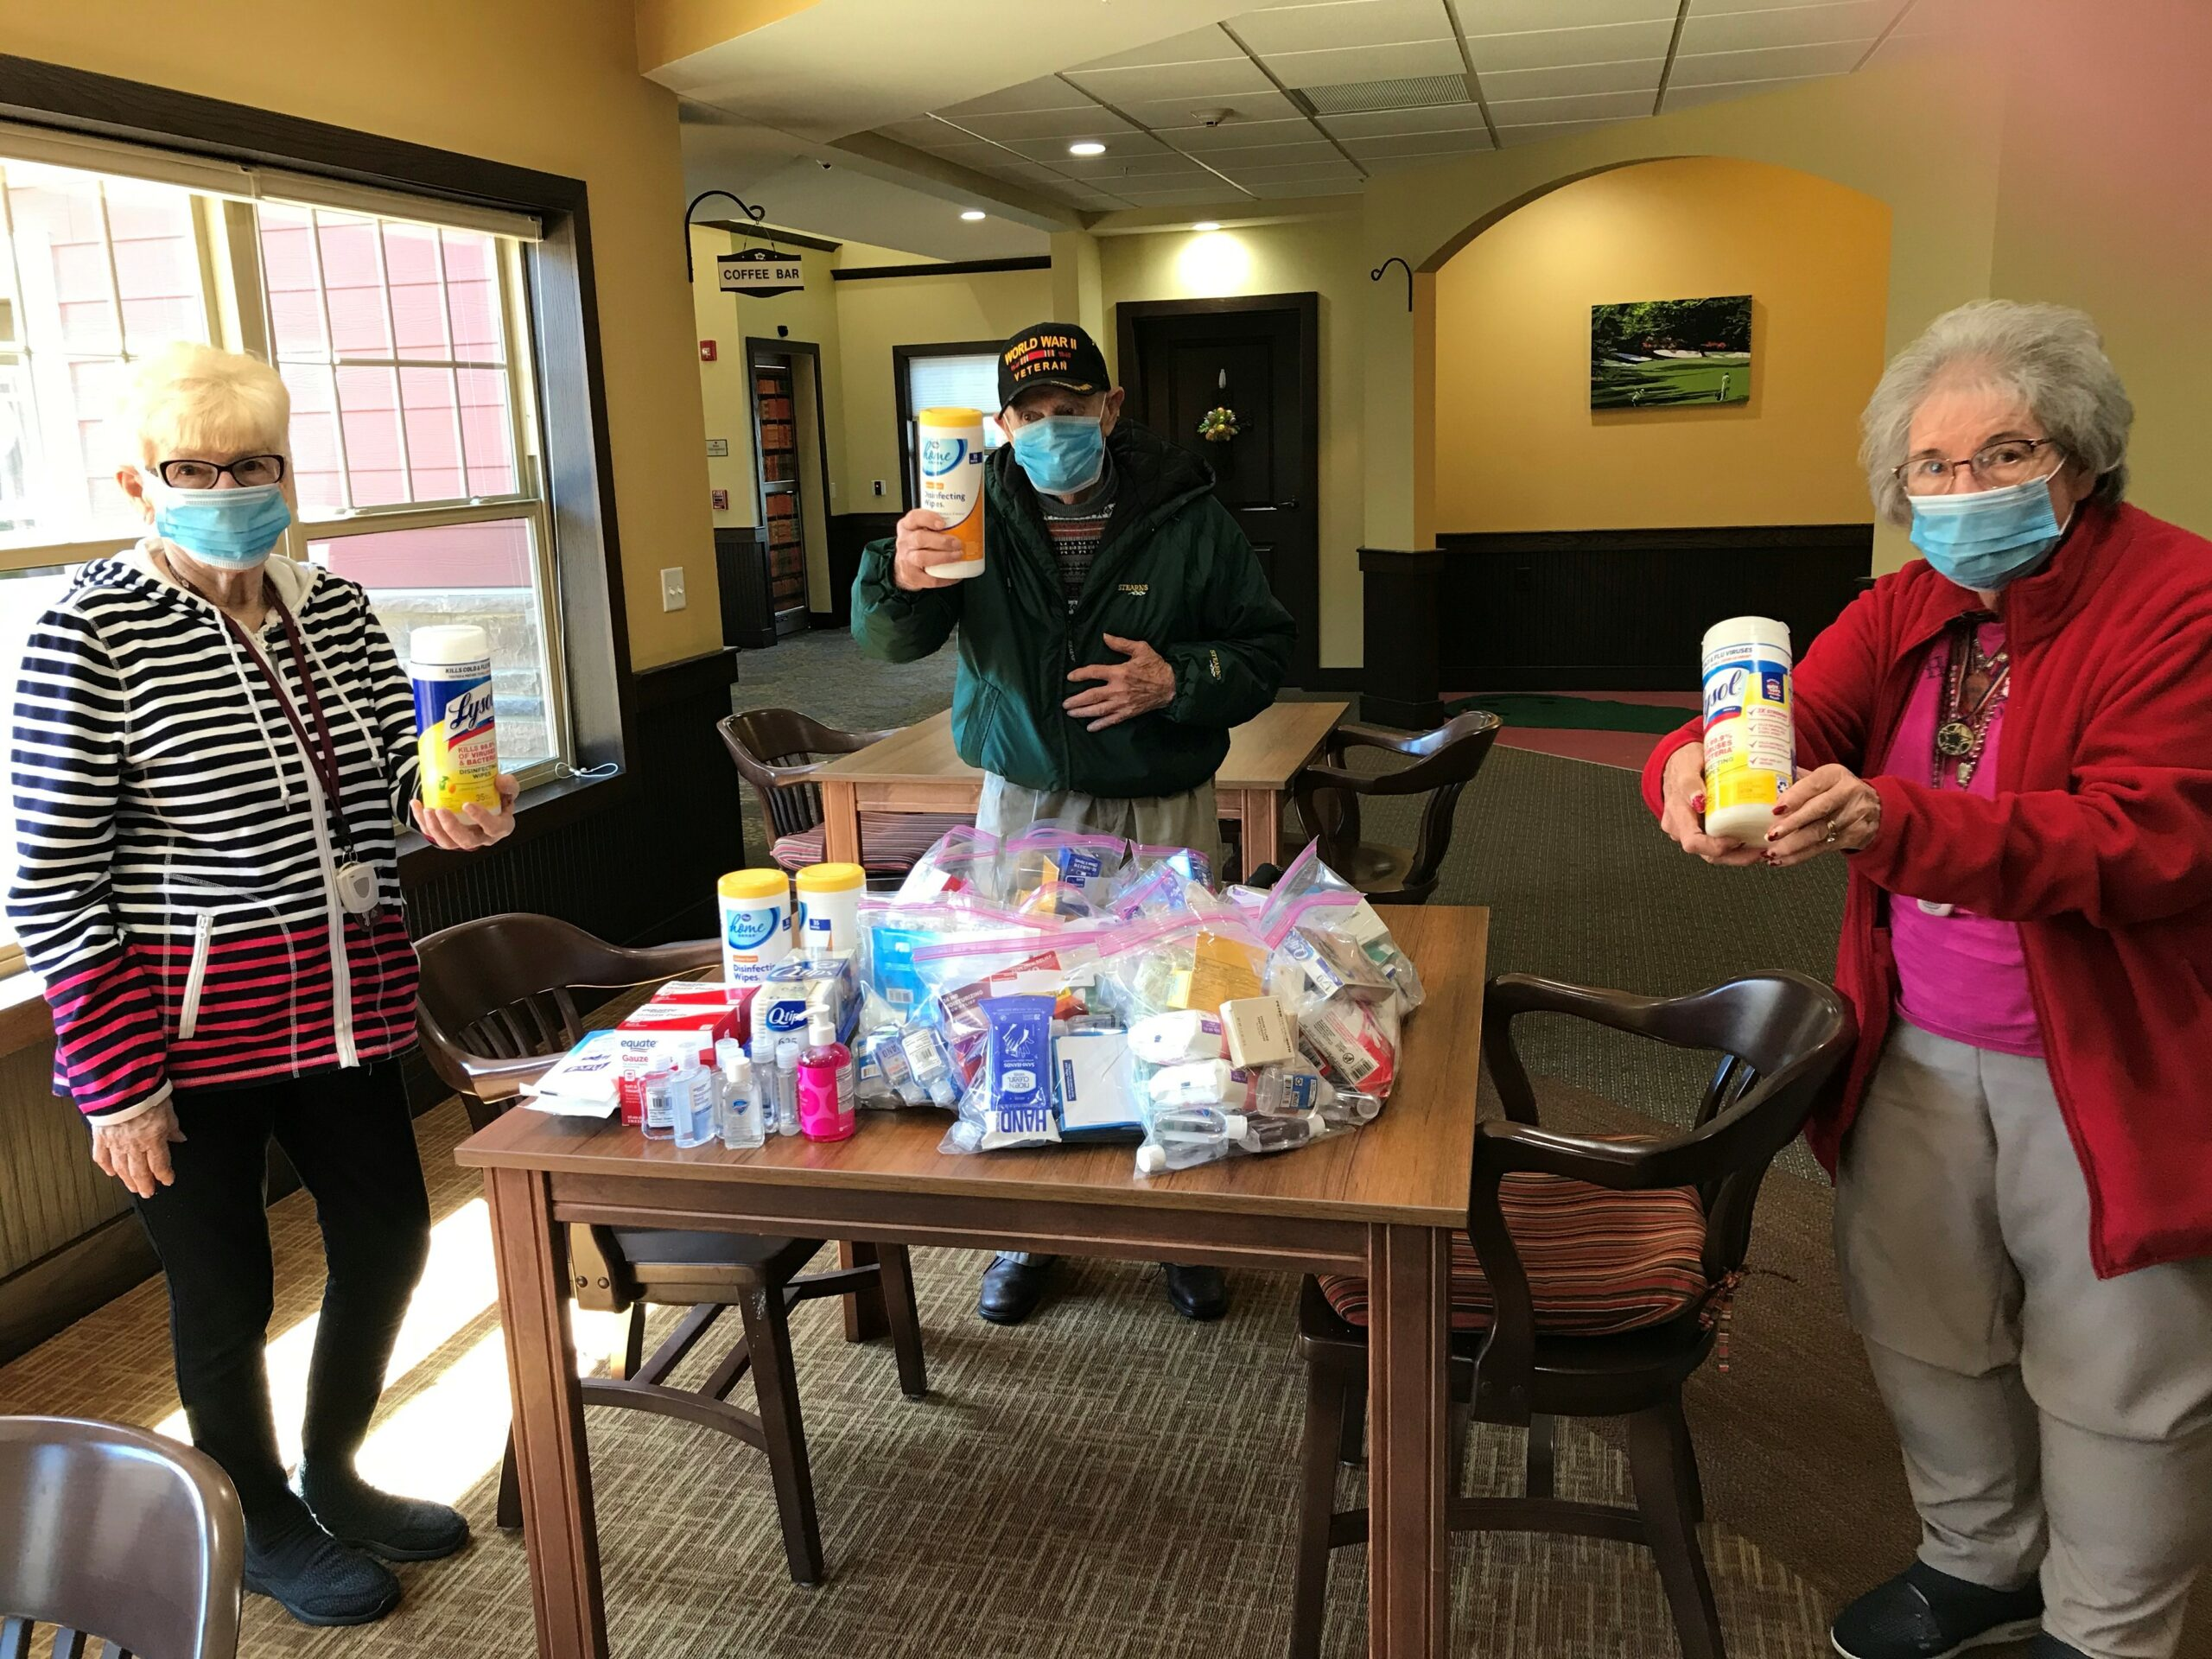 Residents putting together first aid boxes to take to local shelters